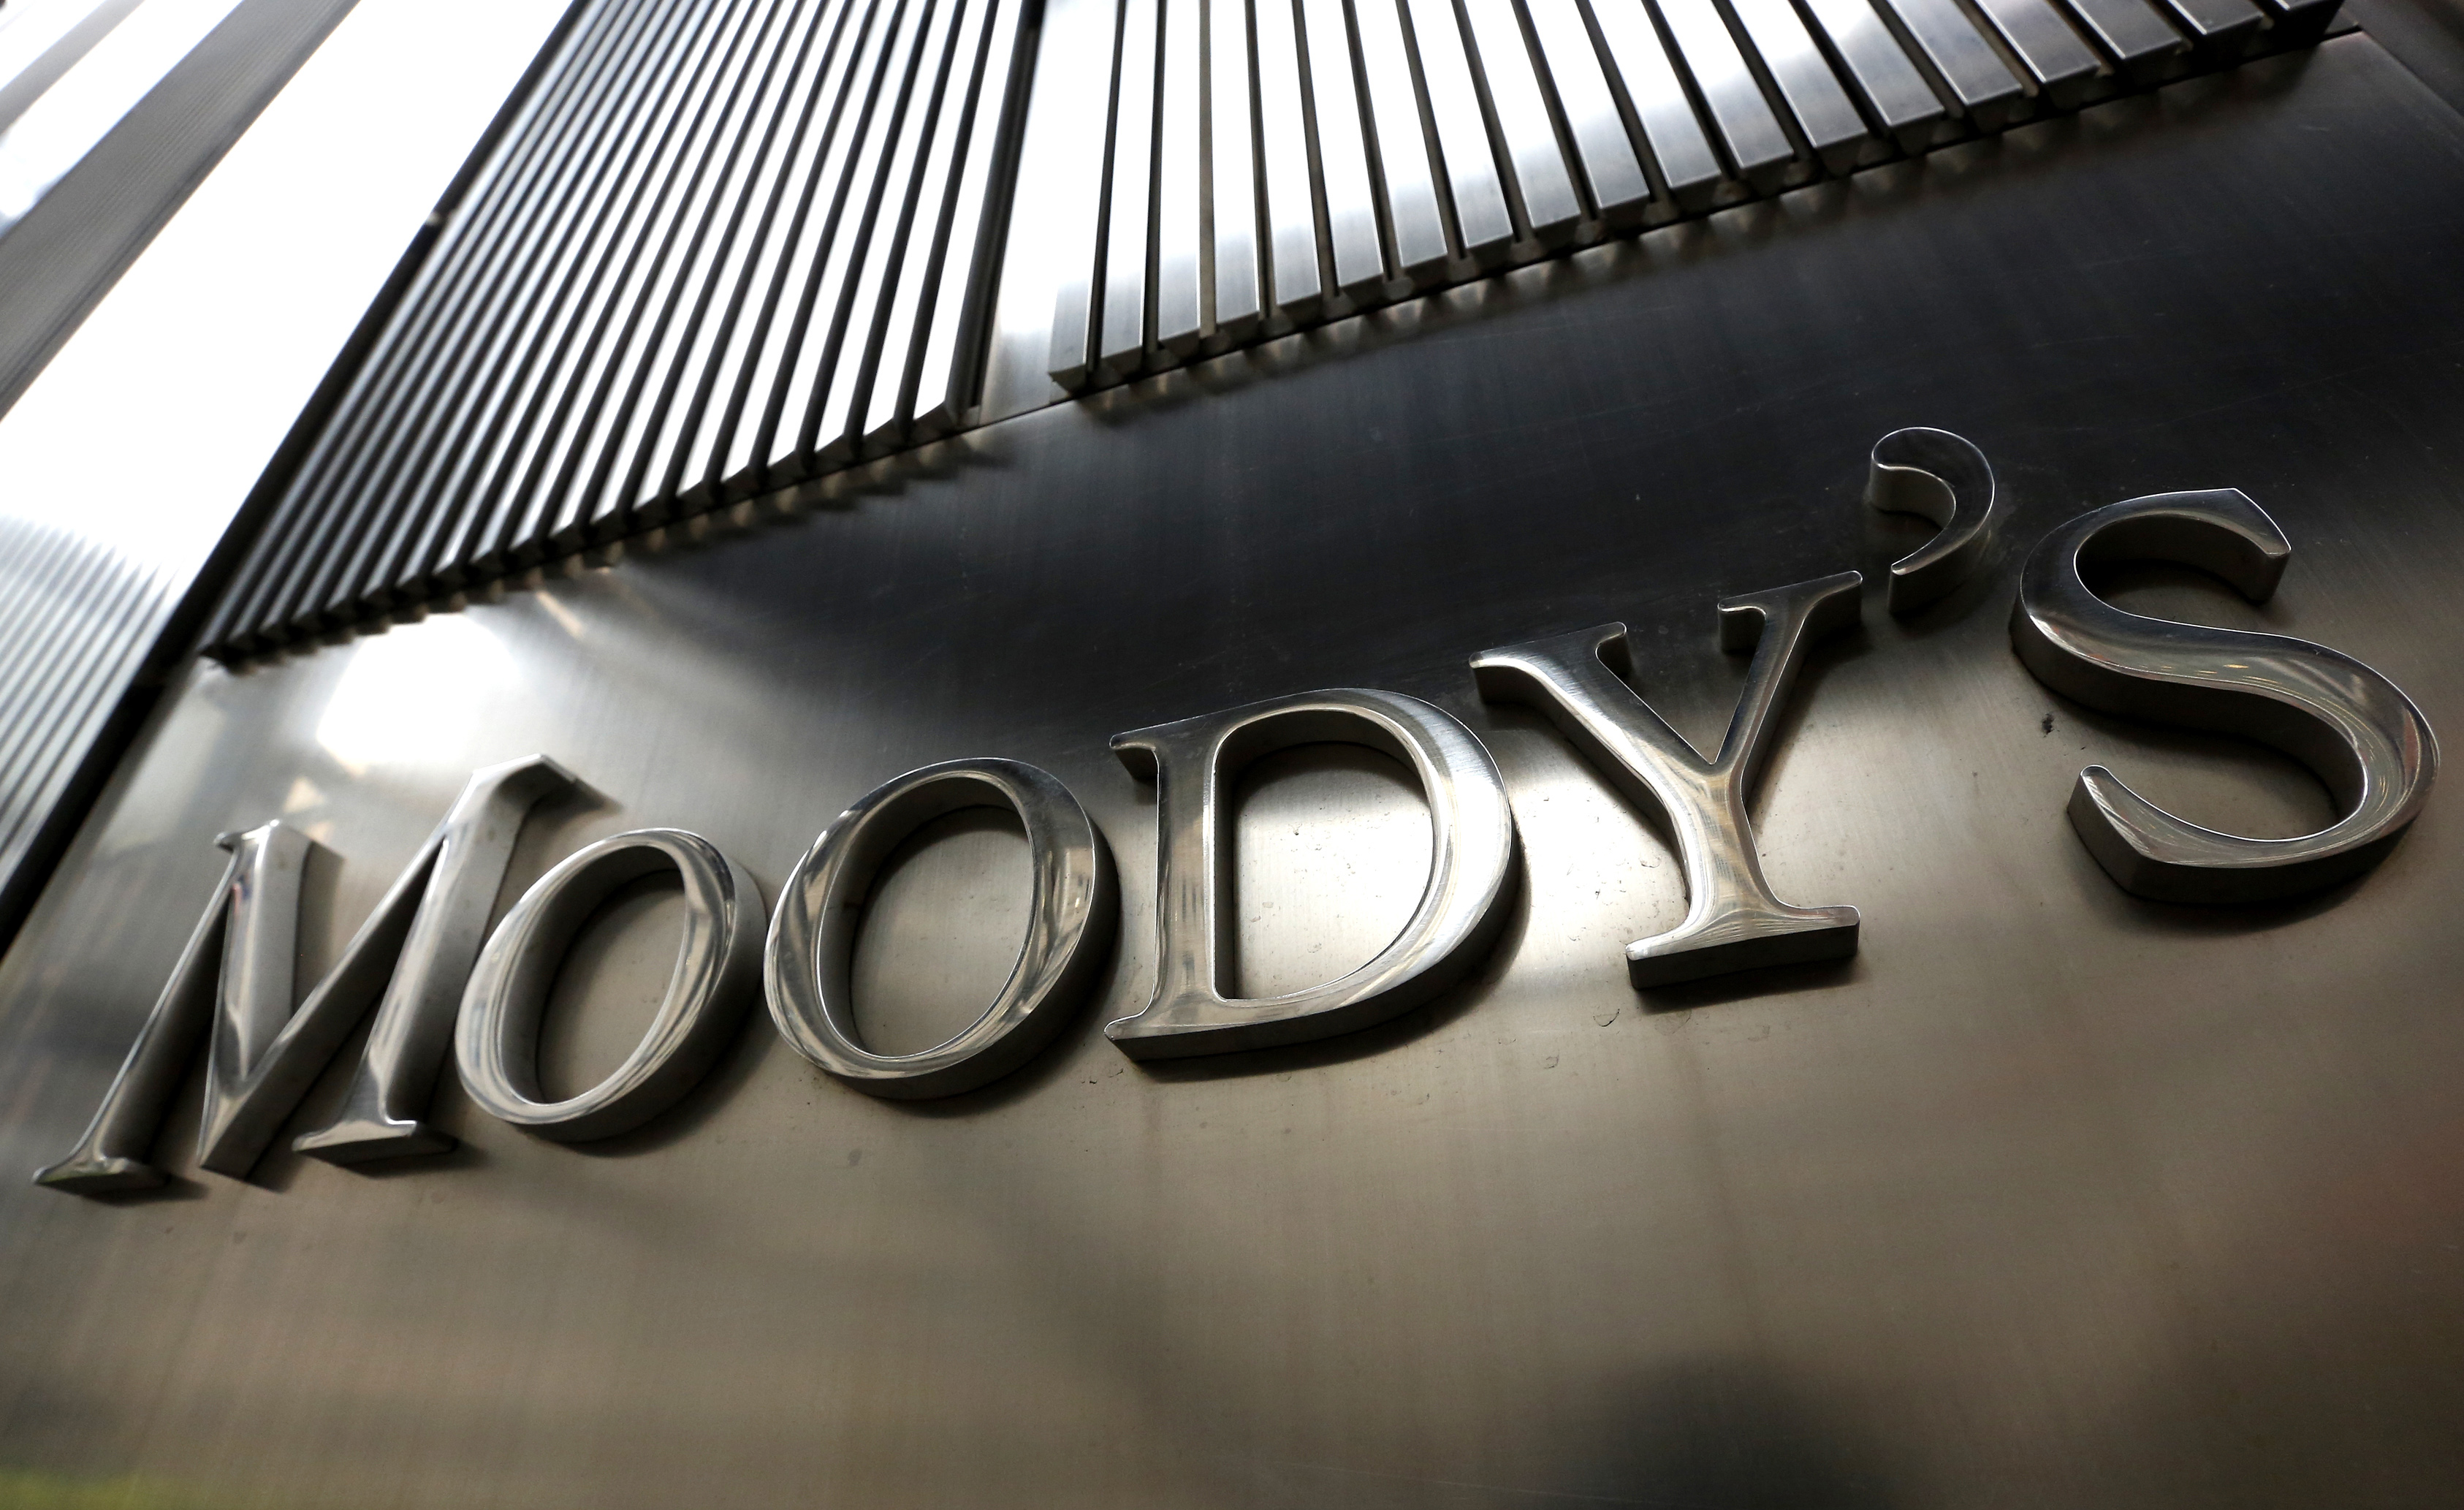 Moody's buying Bureau van Dijk for about $3.27 billion